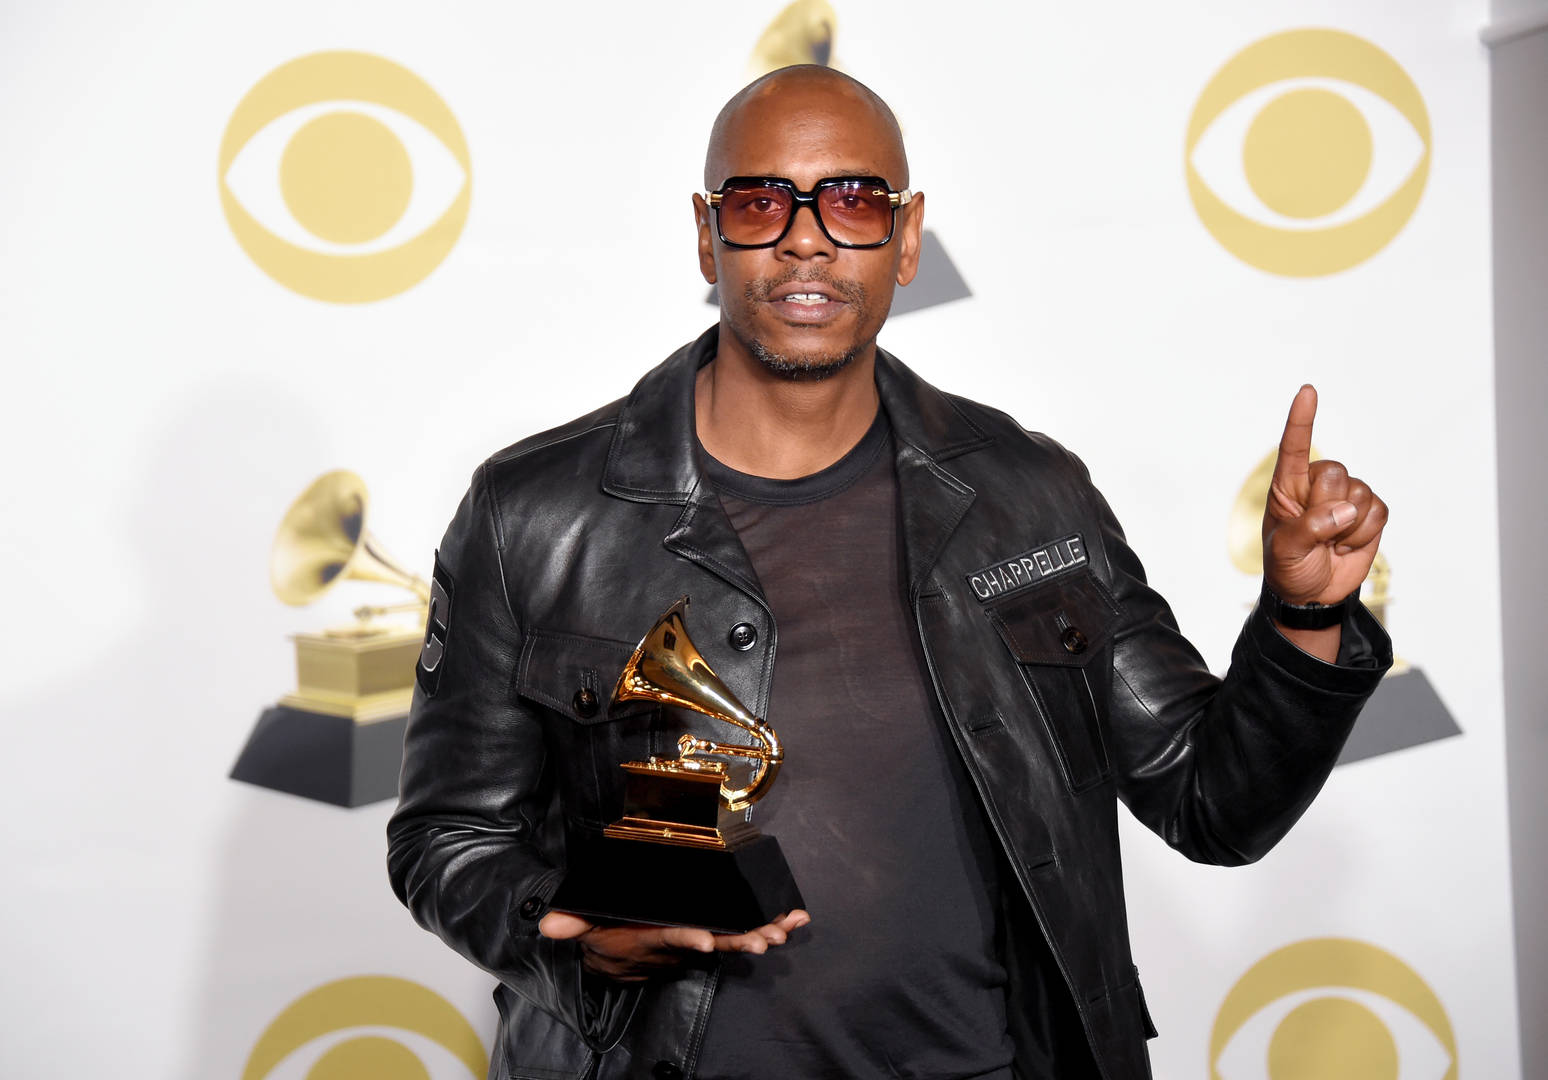 Dave Chappelle. 8:46